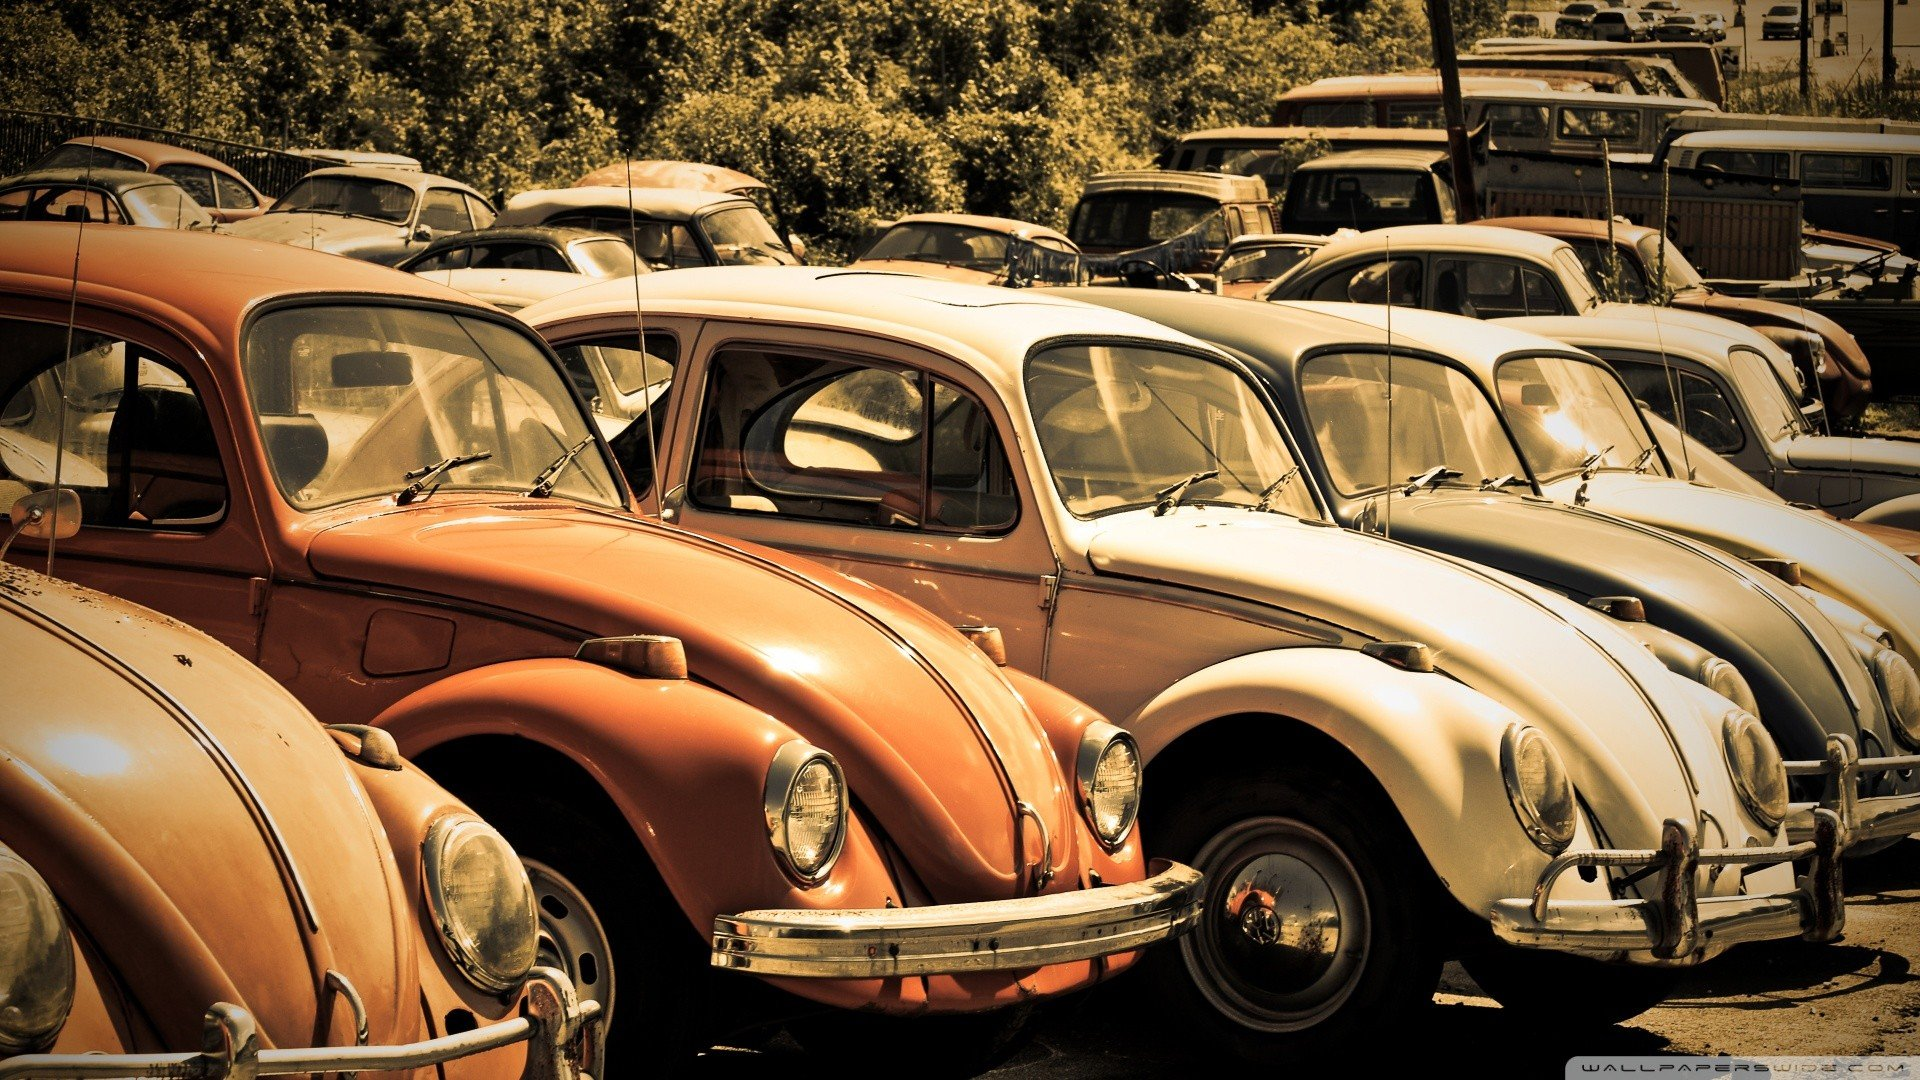 free volkswagen (vw) high quality wallpaper id:52650 for full hd